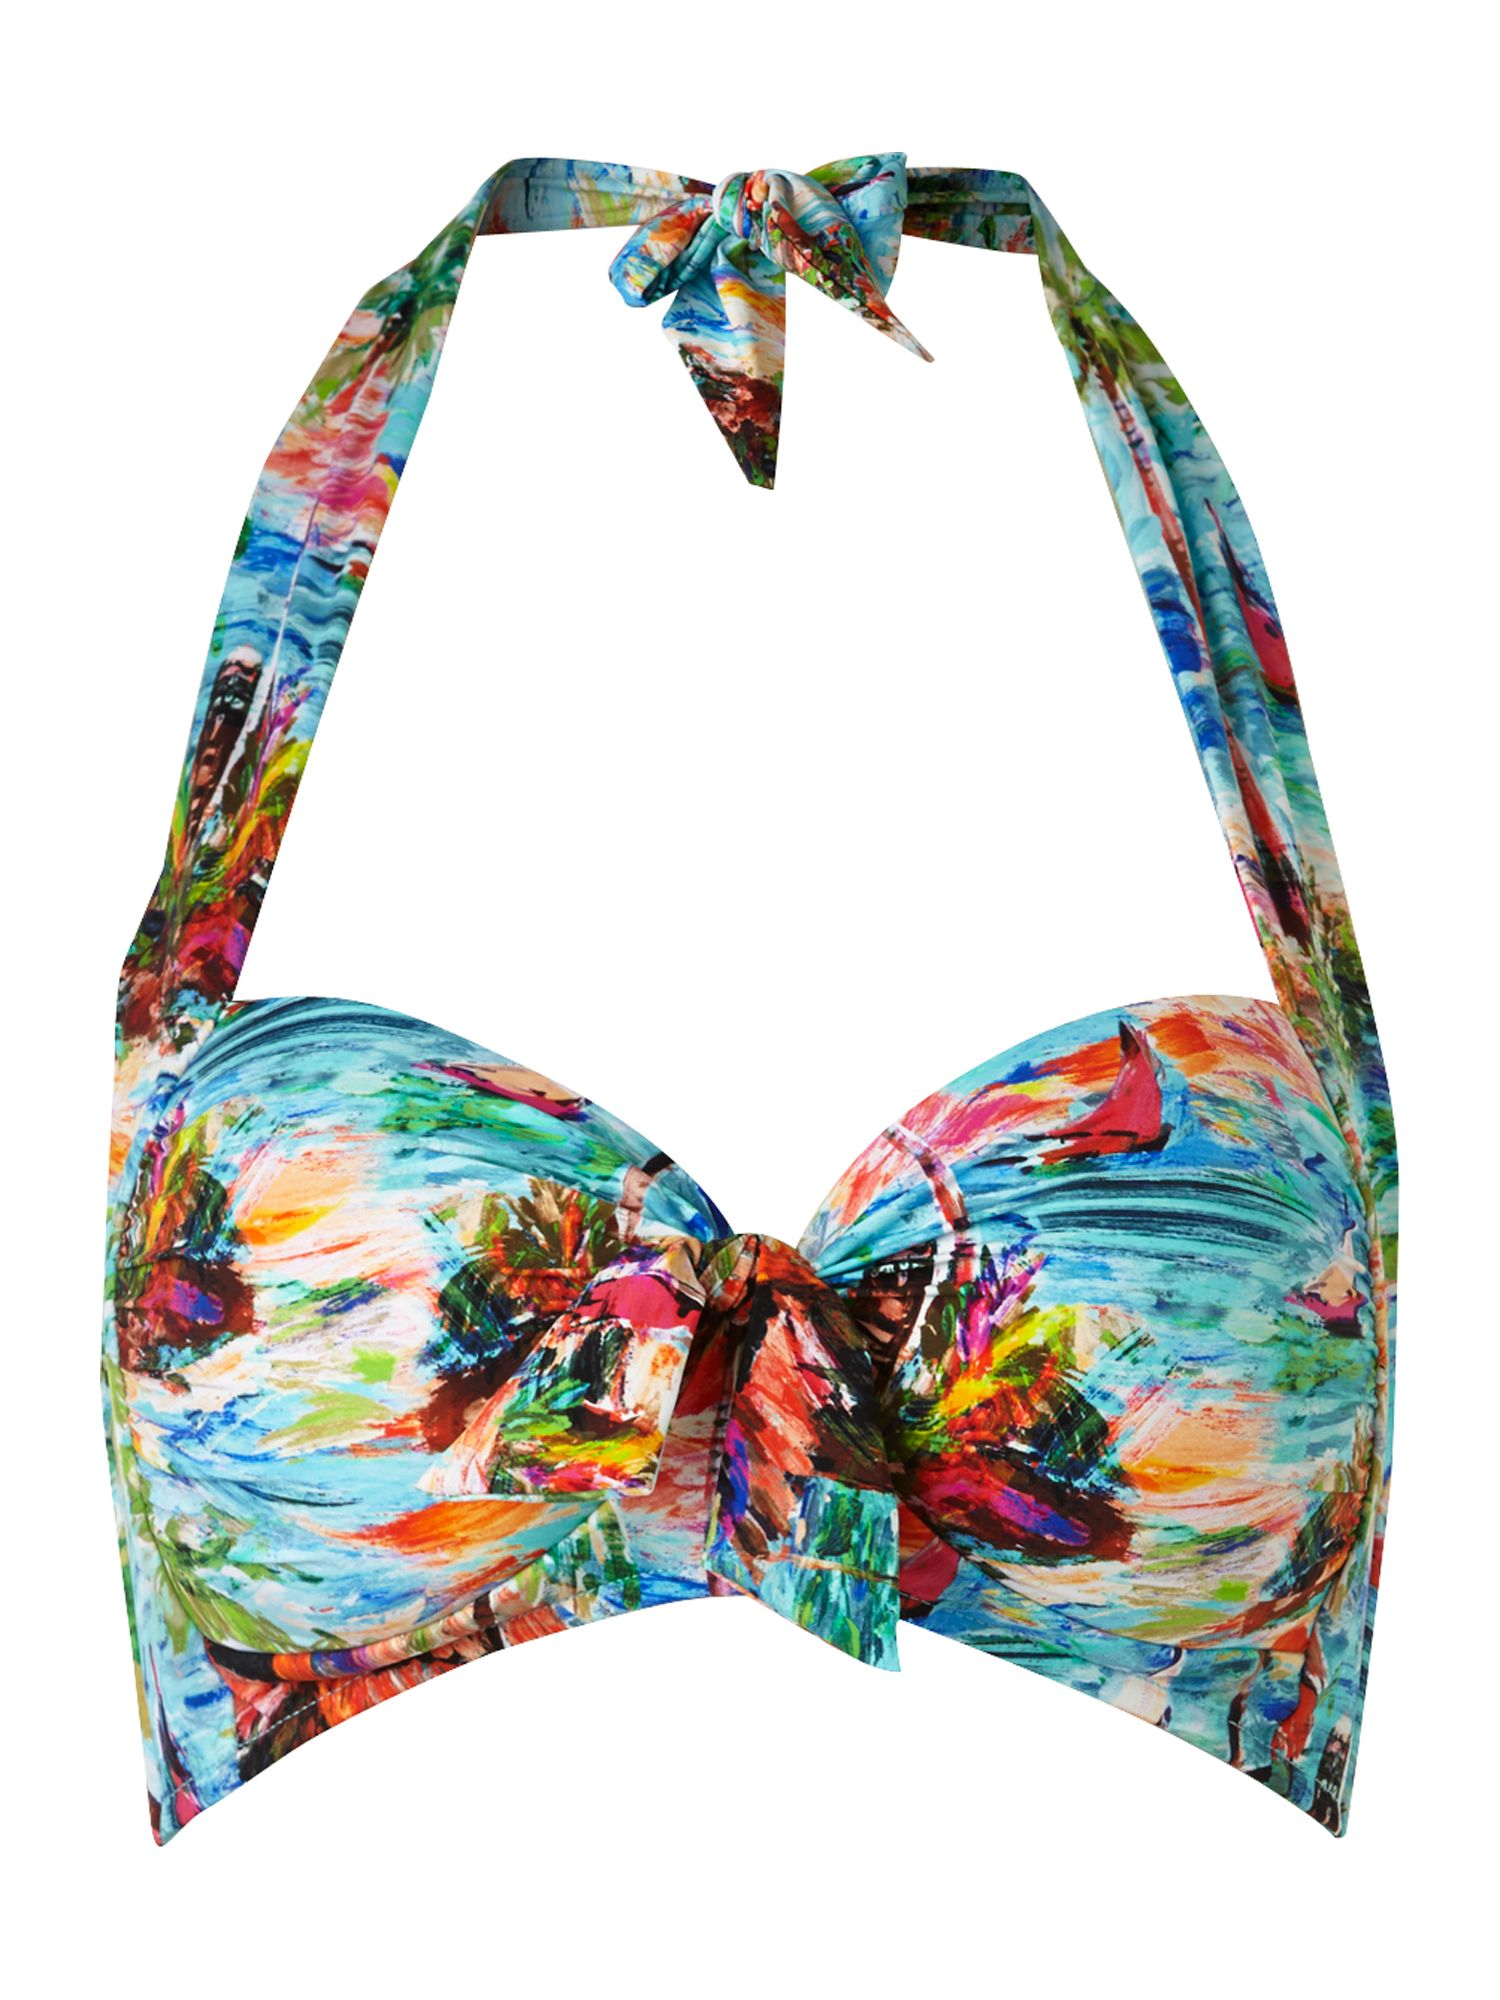 South pacific soft cup halter top